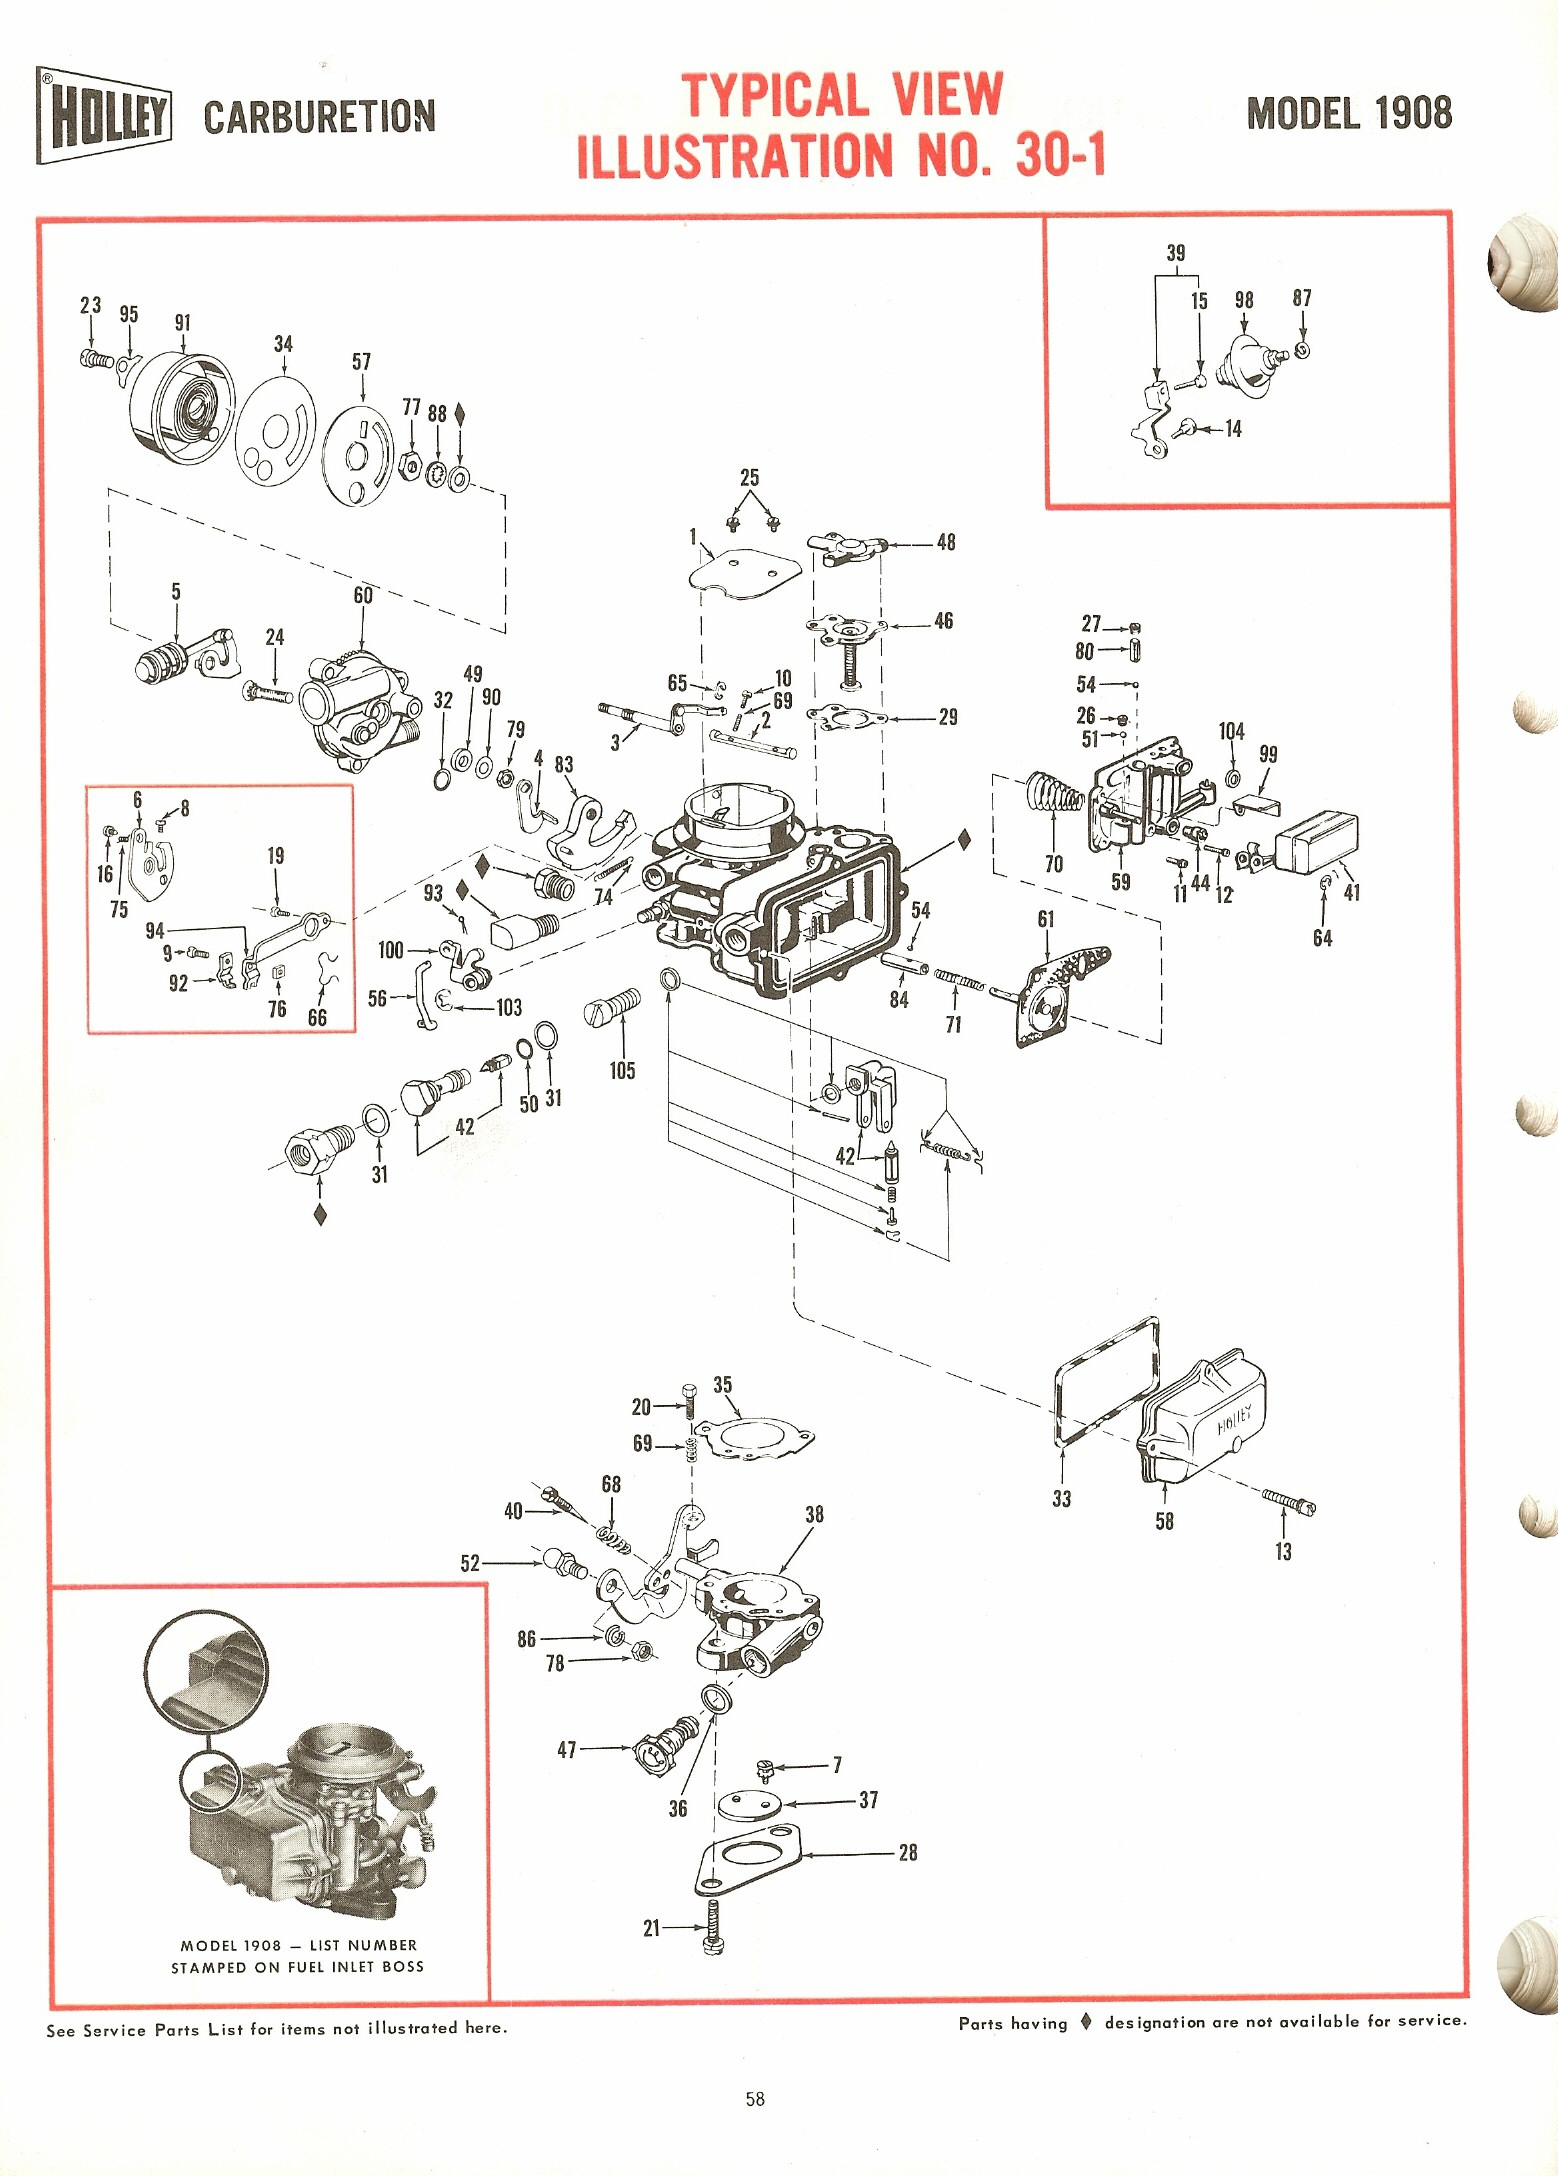 Holley 1908 Exploded Diagrams